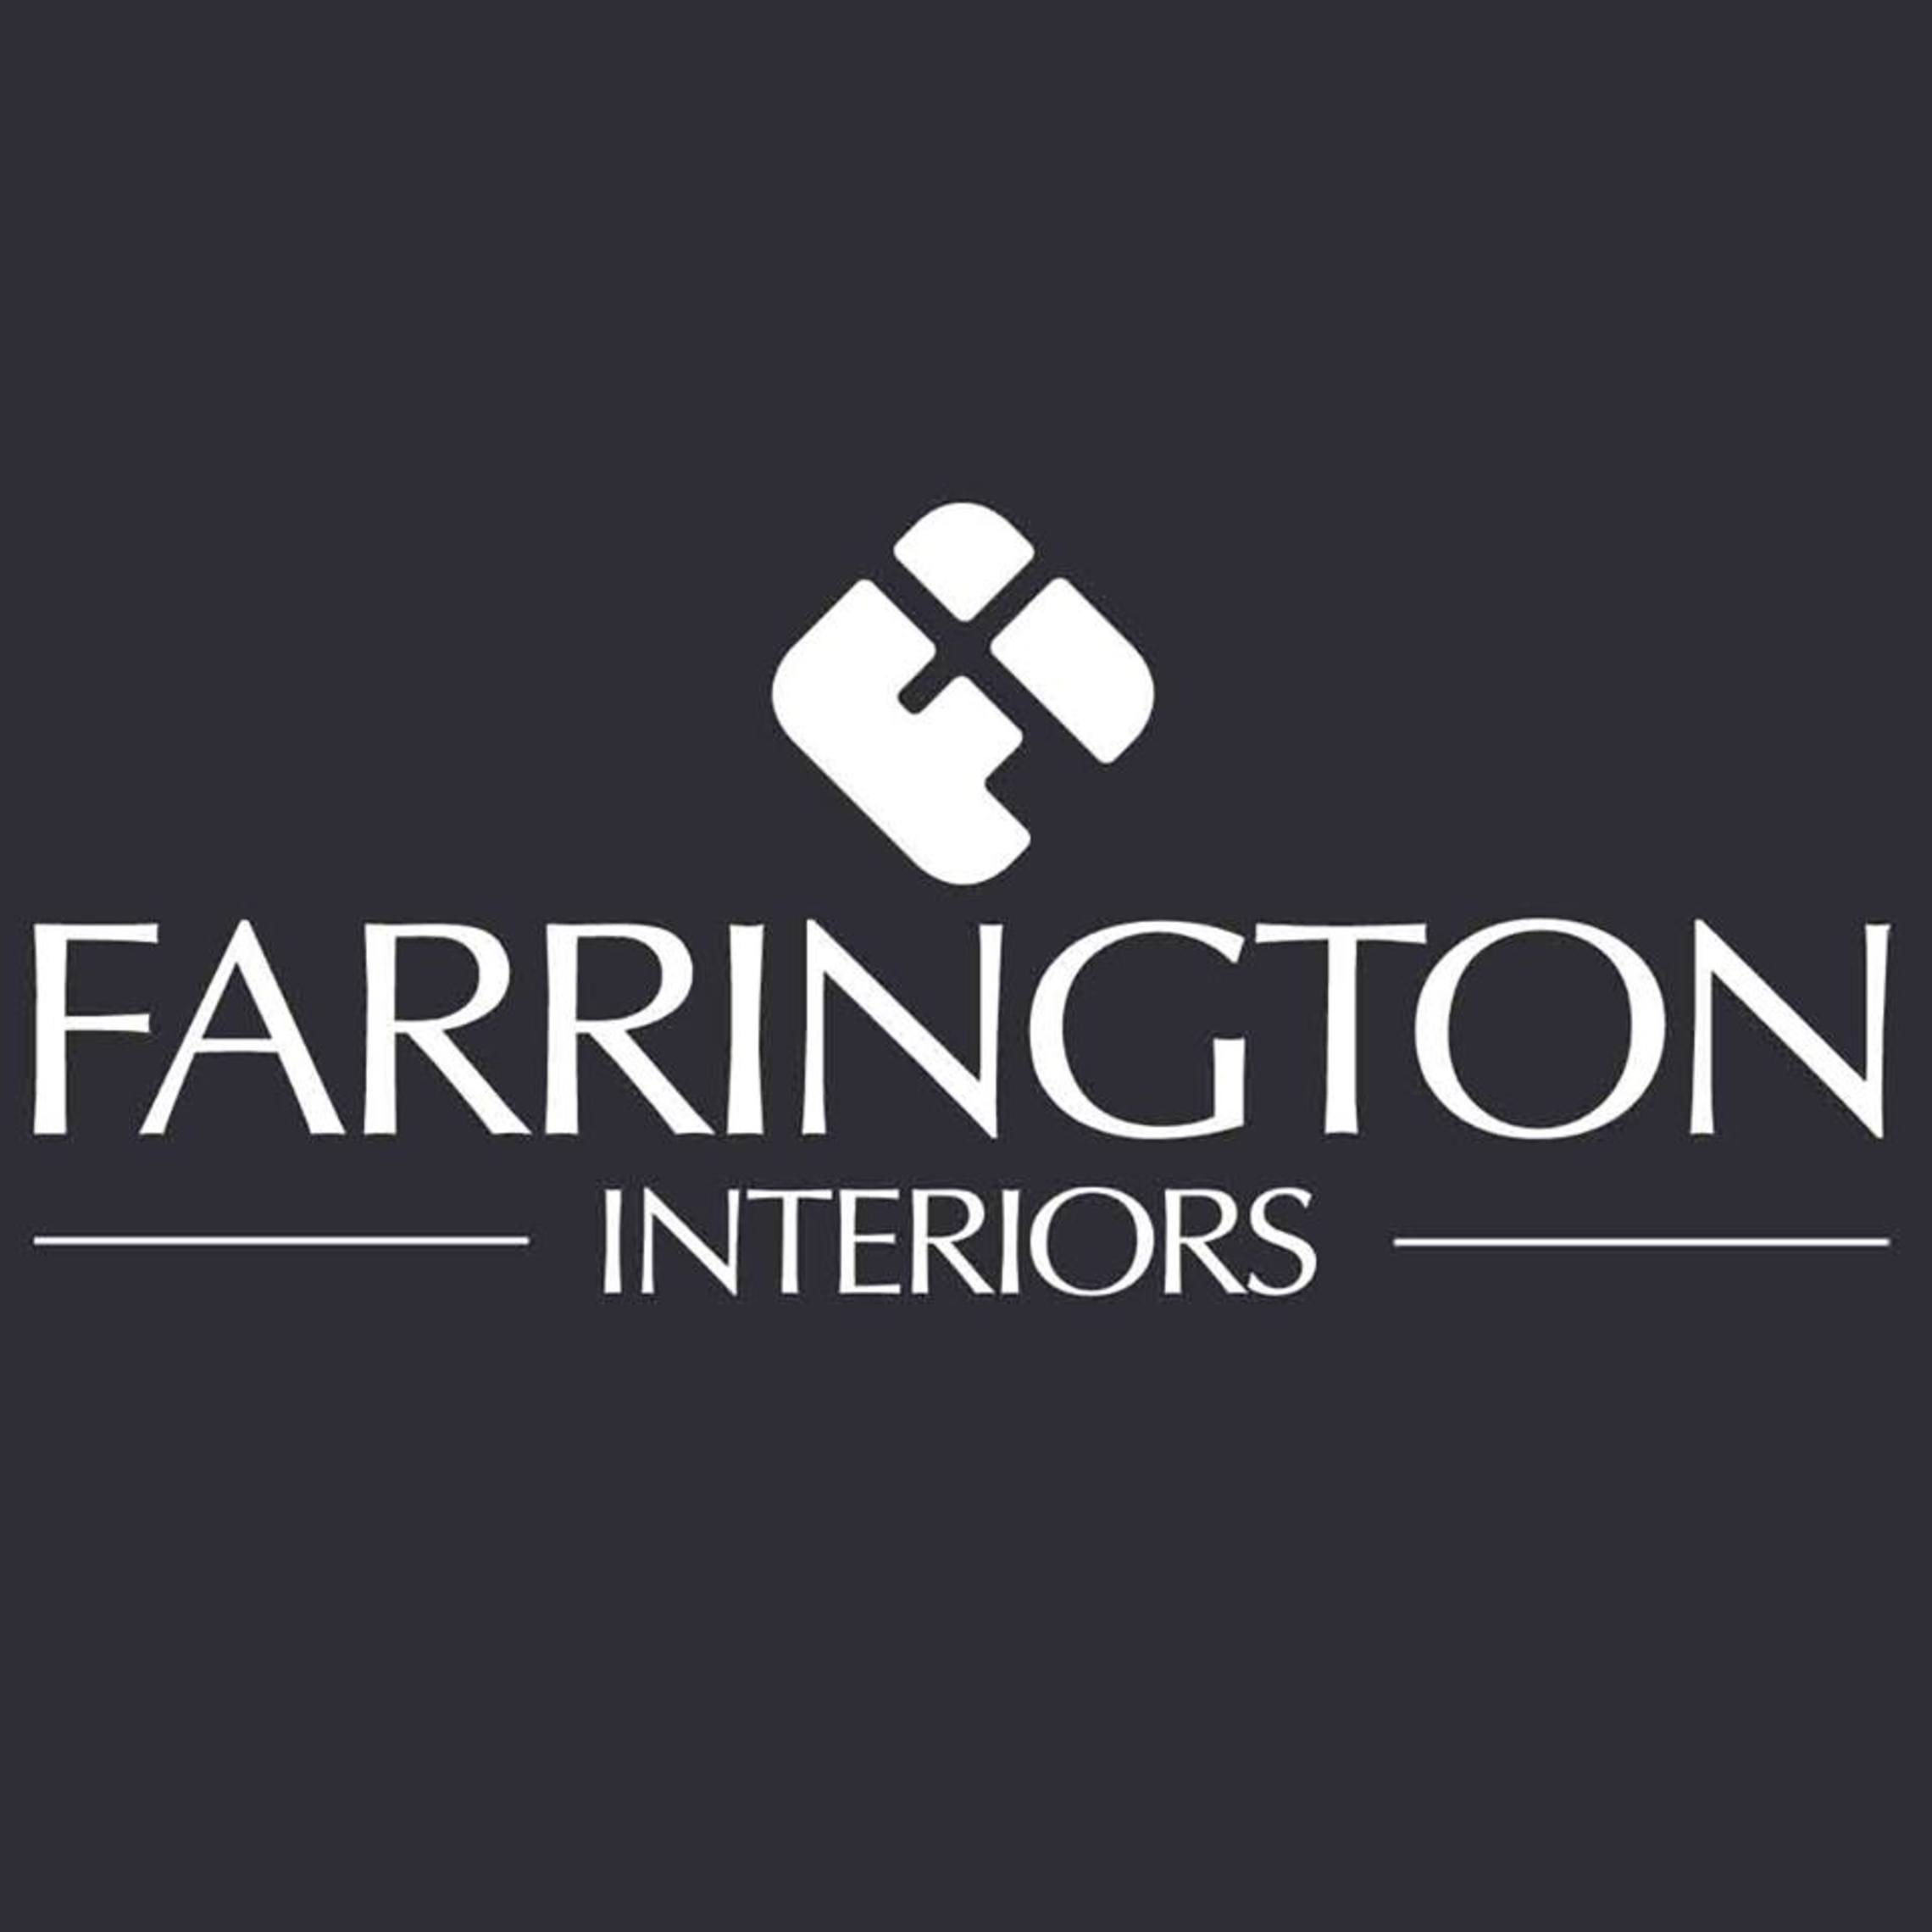 farrington interiors limited- company logo